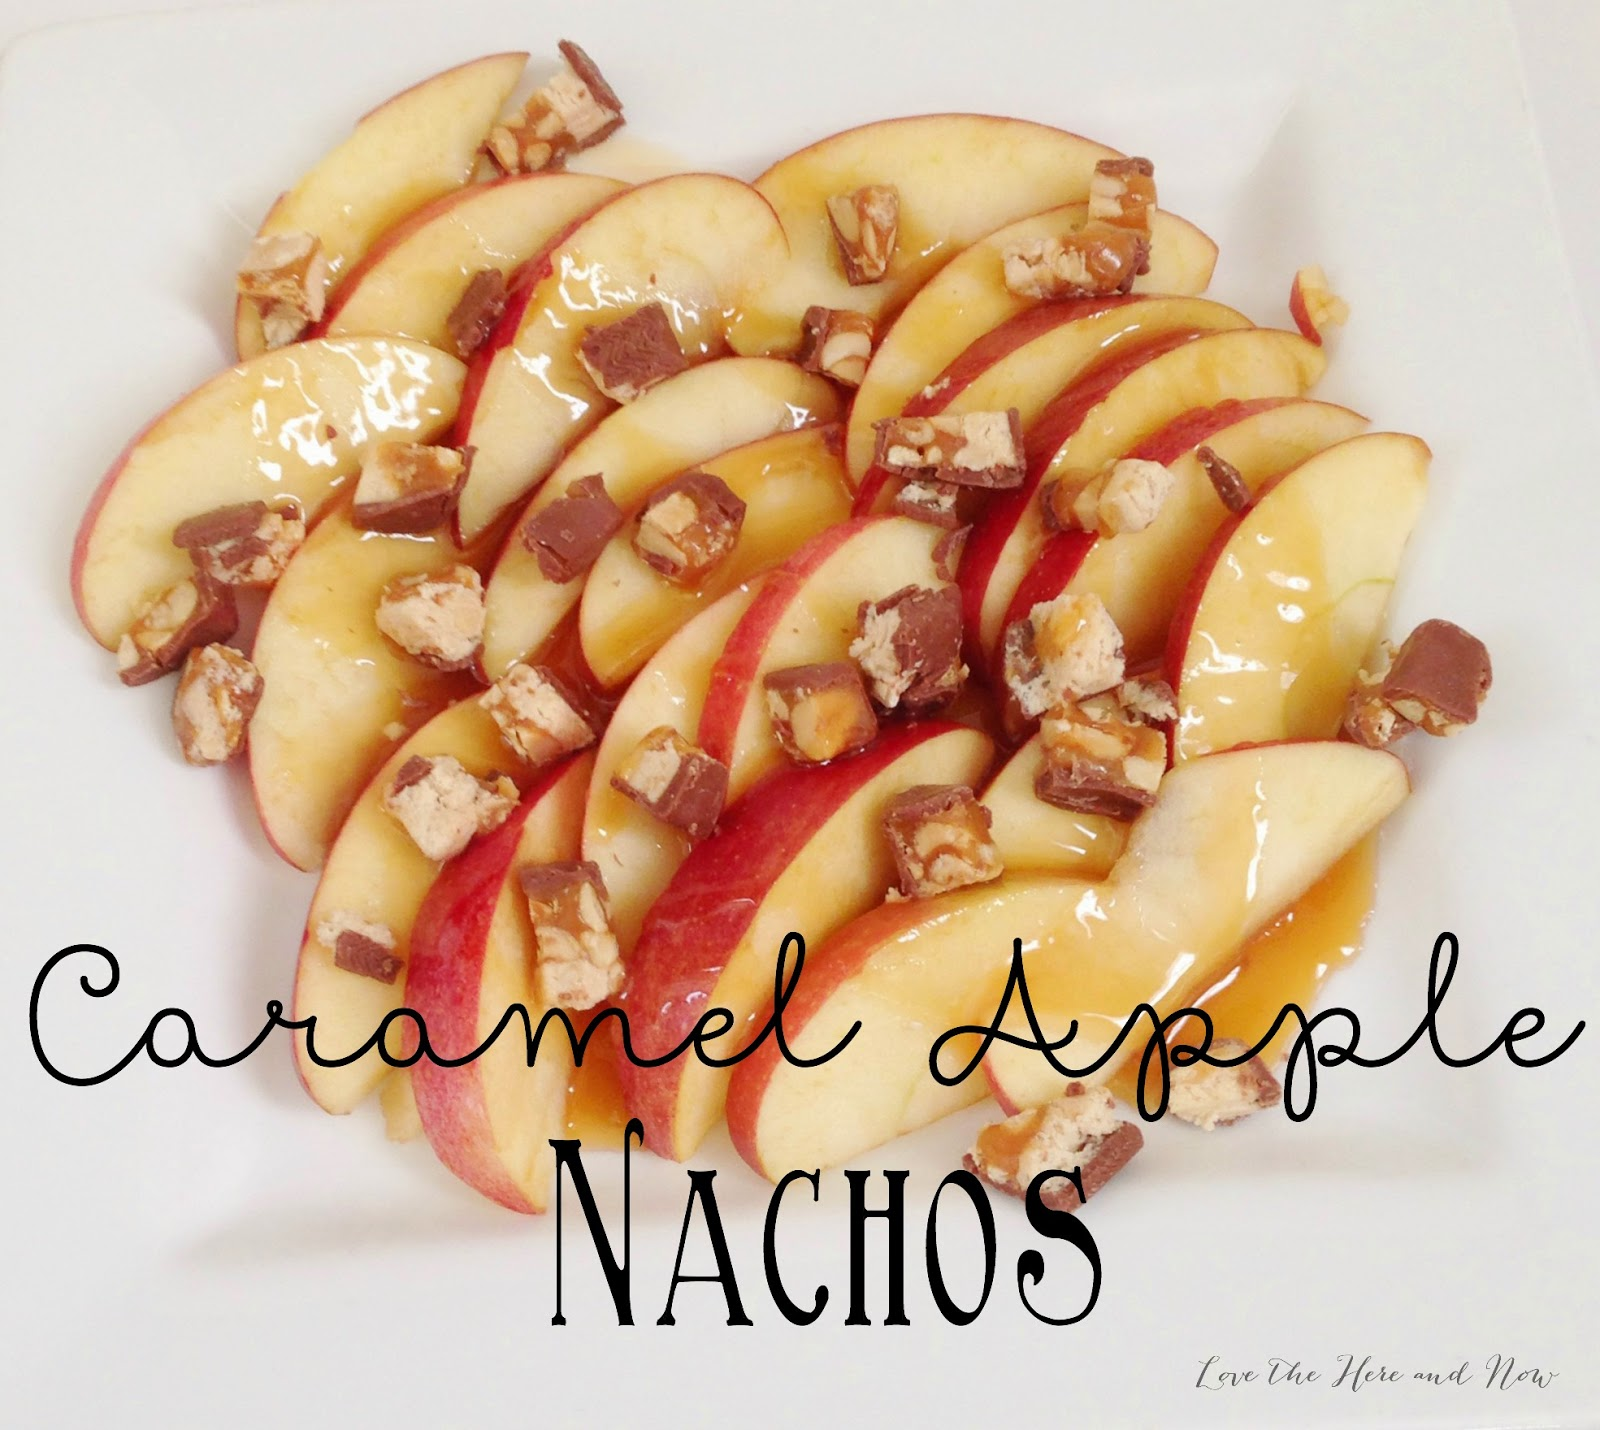 click here for a caramel apple recipe